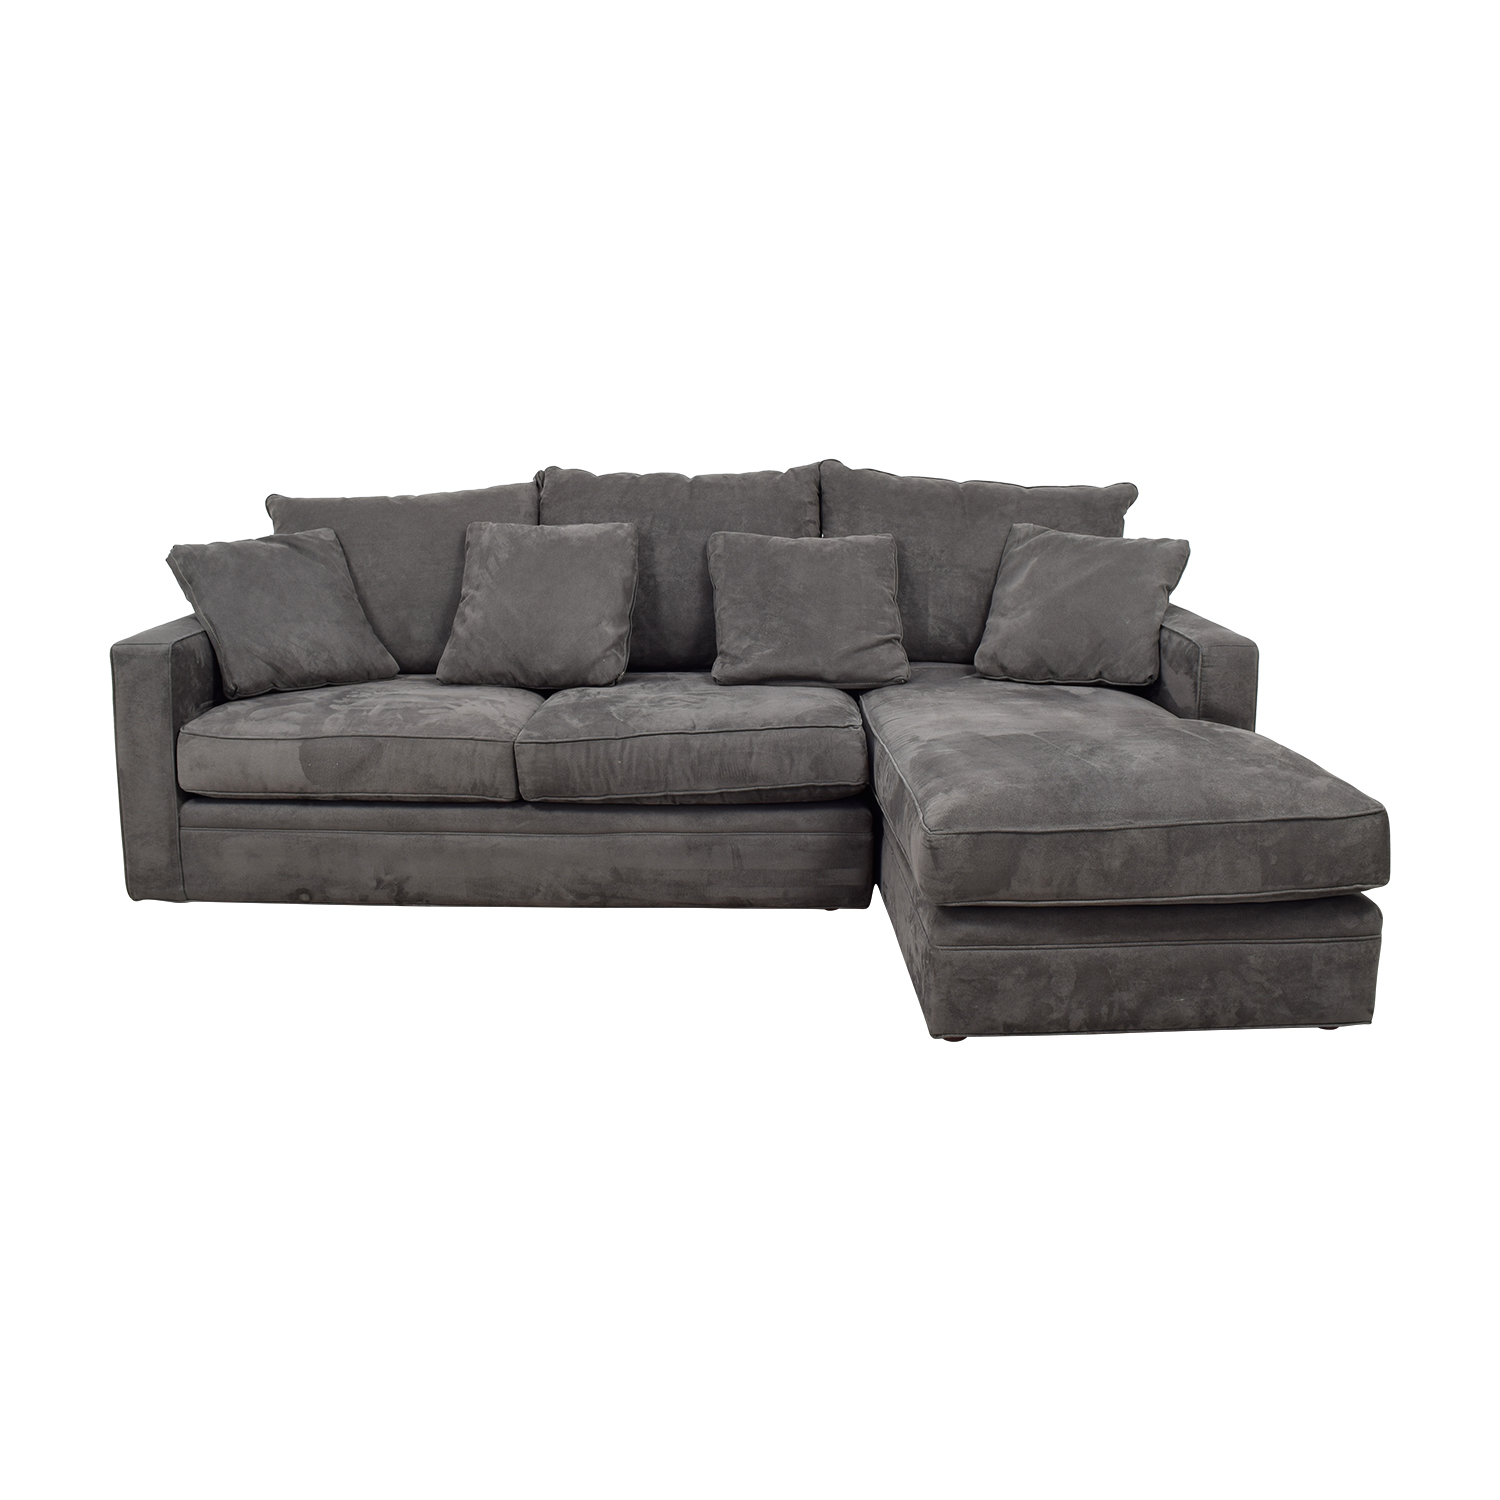 Room & Board Room & Board Grey Chaise Sectional price